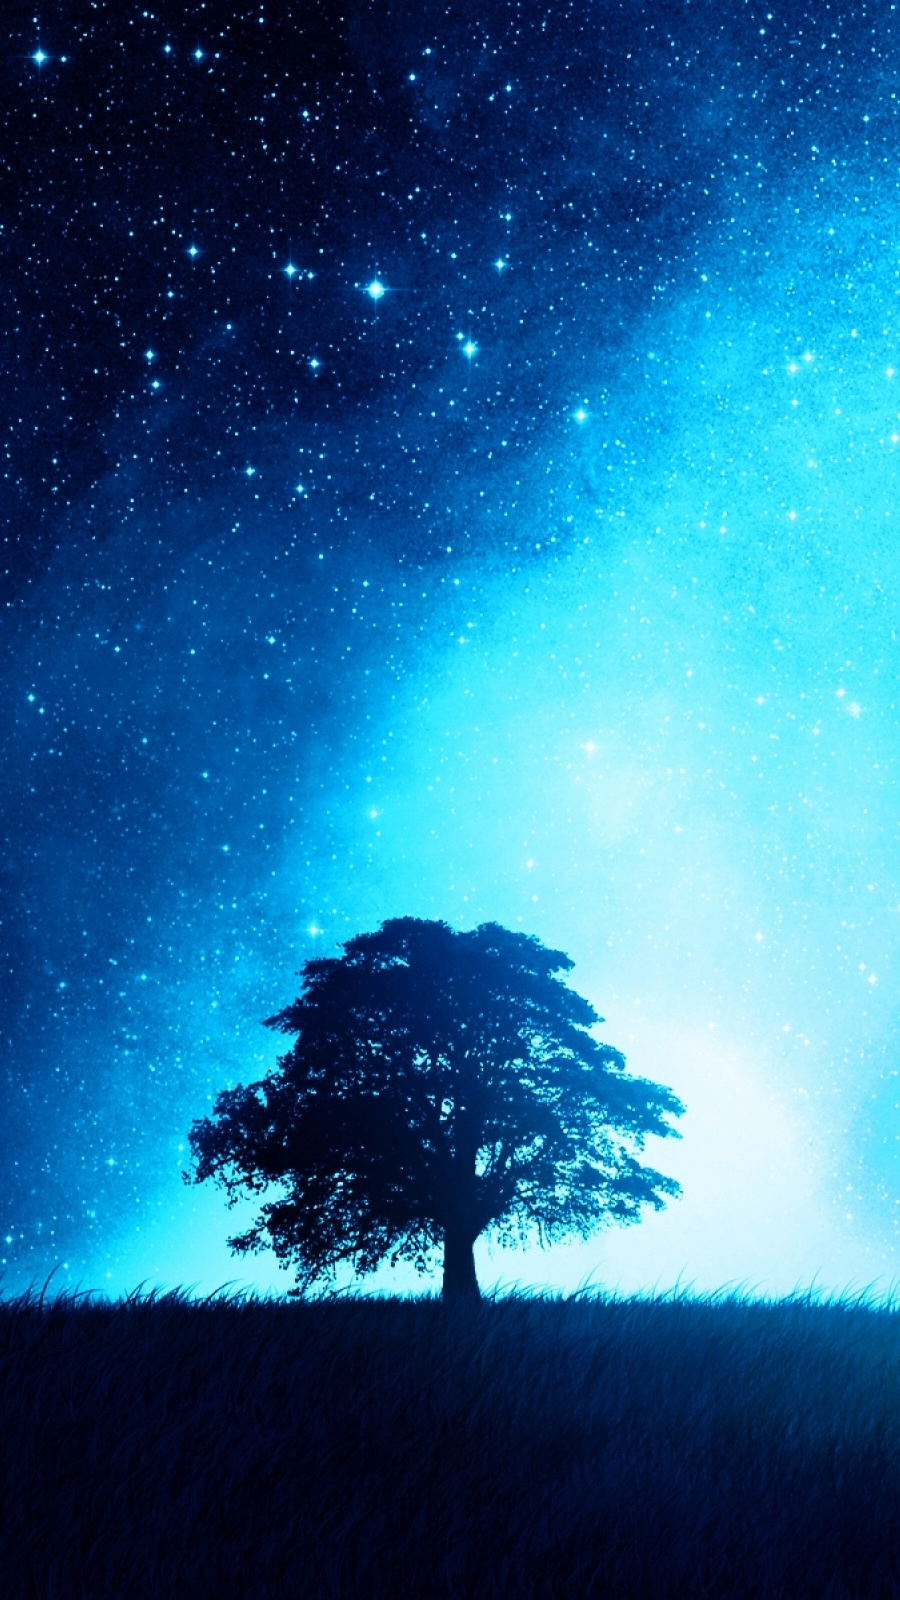 Minimalist Iphone Wallpaper Quotes Night Sky Tree Iphone Wallpaper Iphone Wallpapers